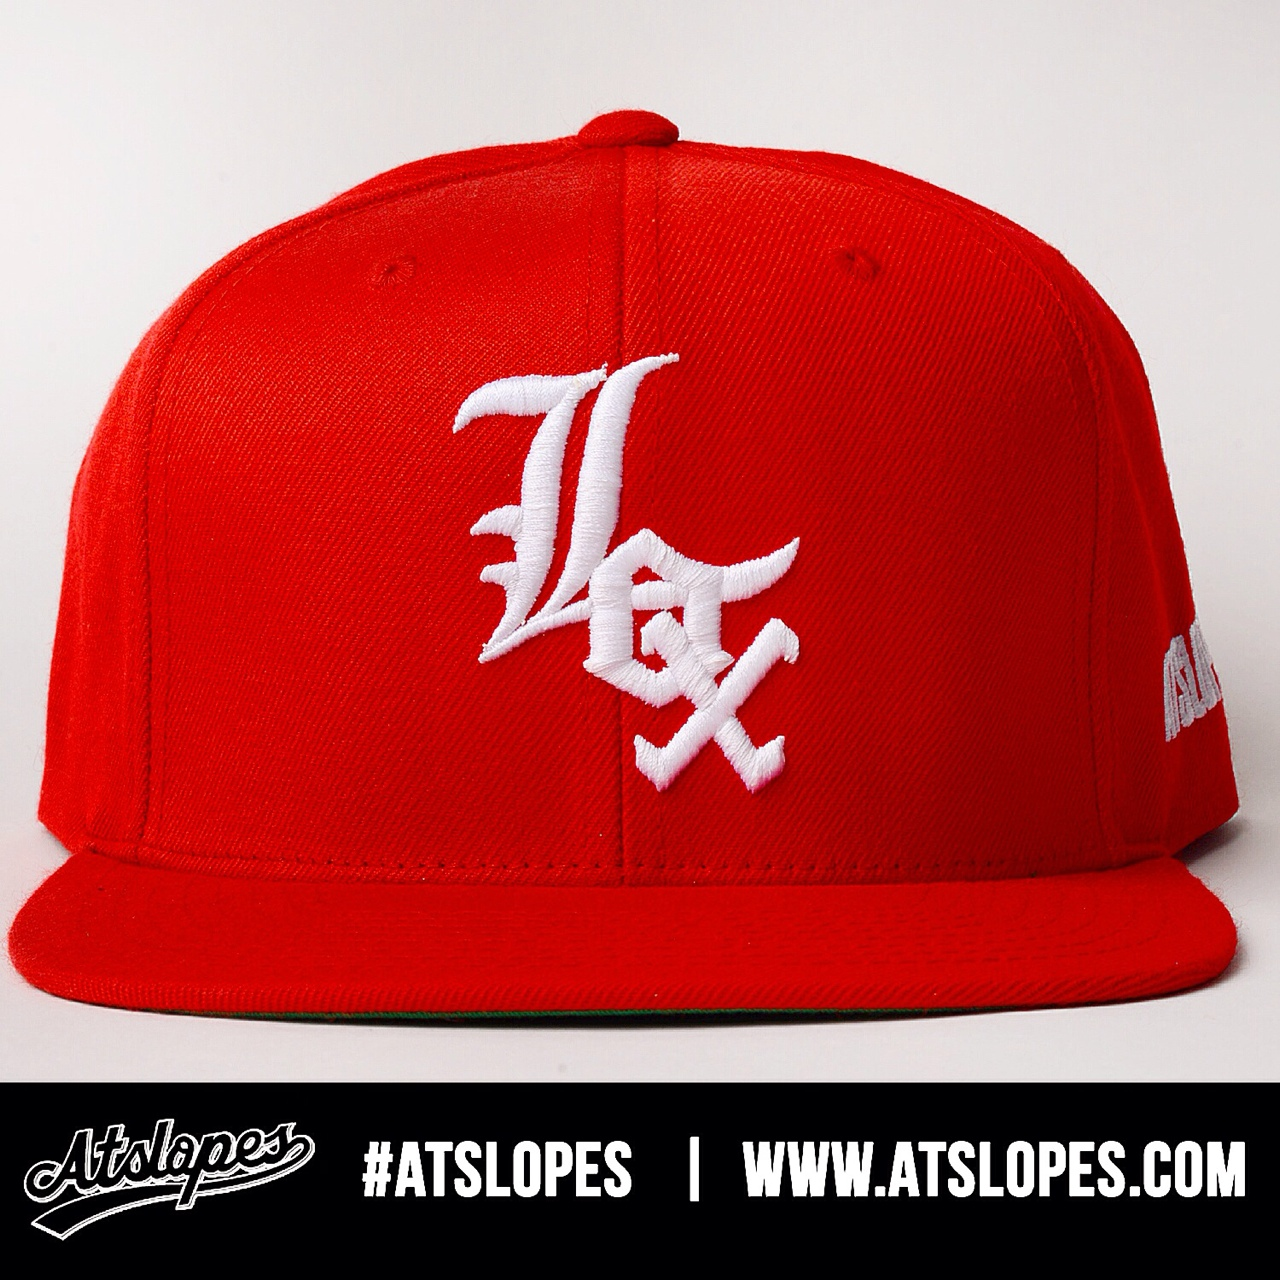 Red LOX SnapBacks are now available on our online shop  www.atslopes.com